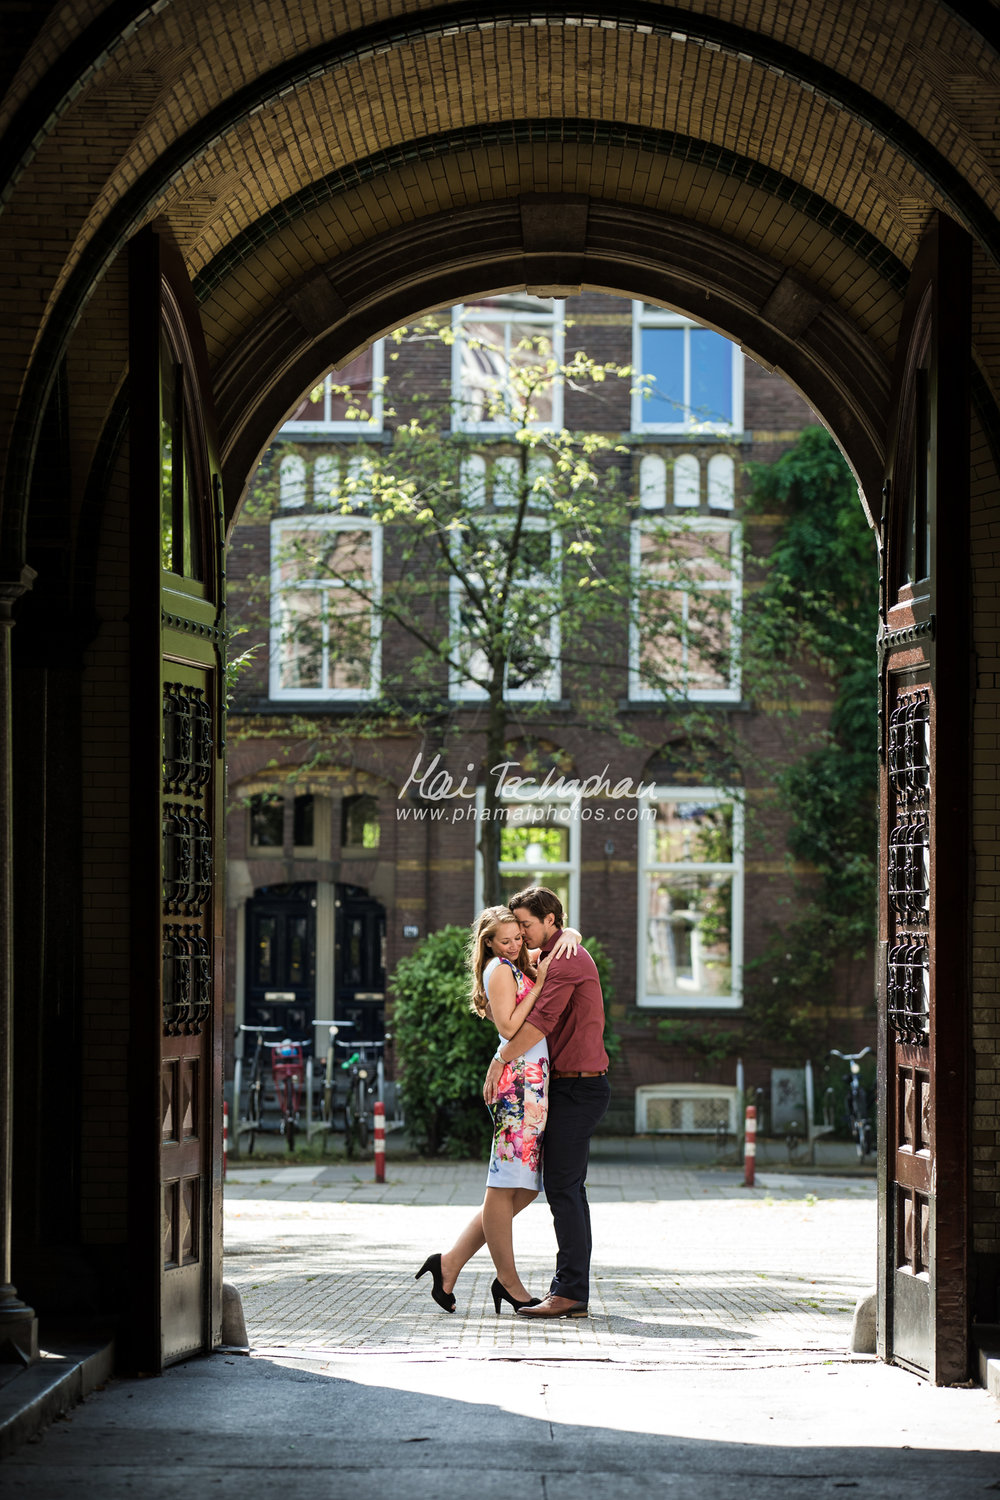 Dax-Sophie-Holland-Pre-Wedding-11.jpg